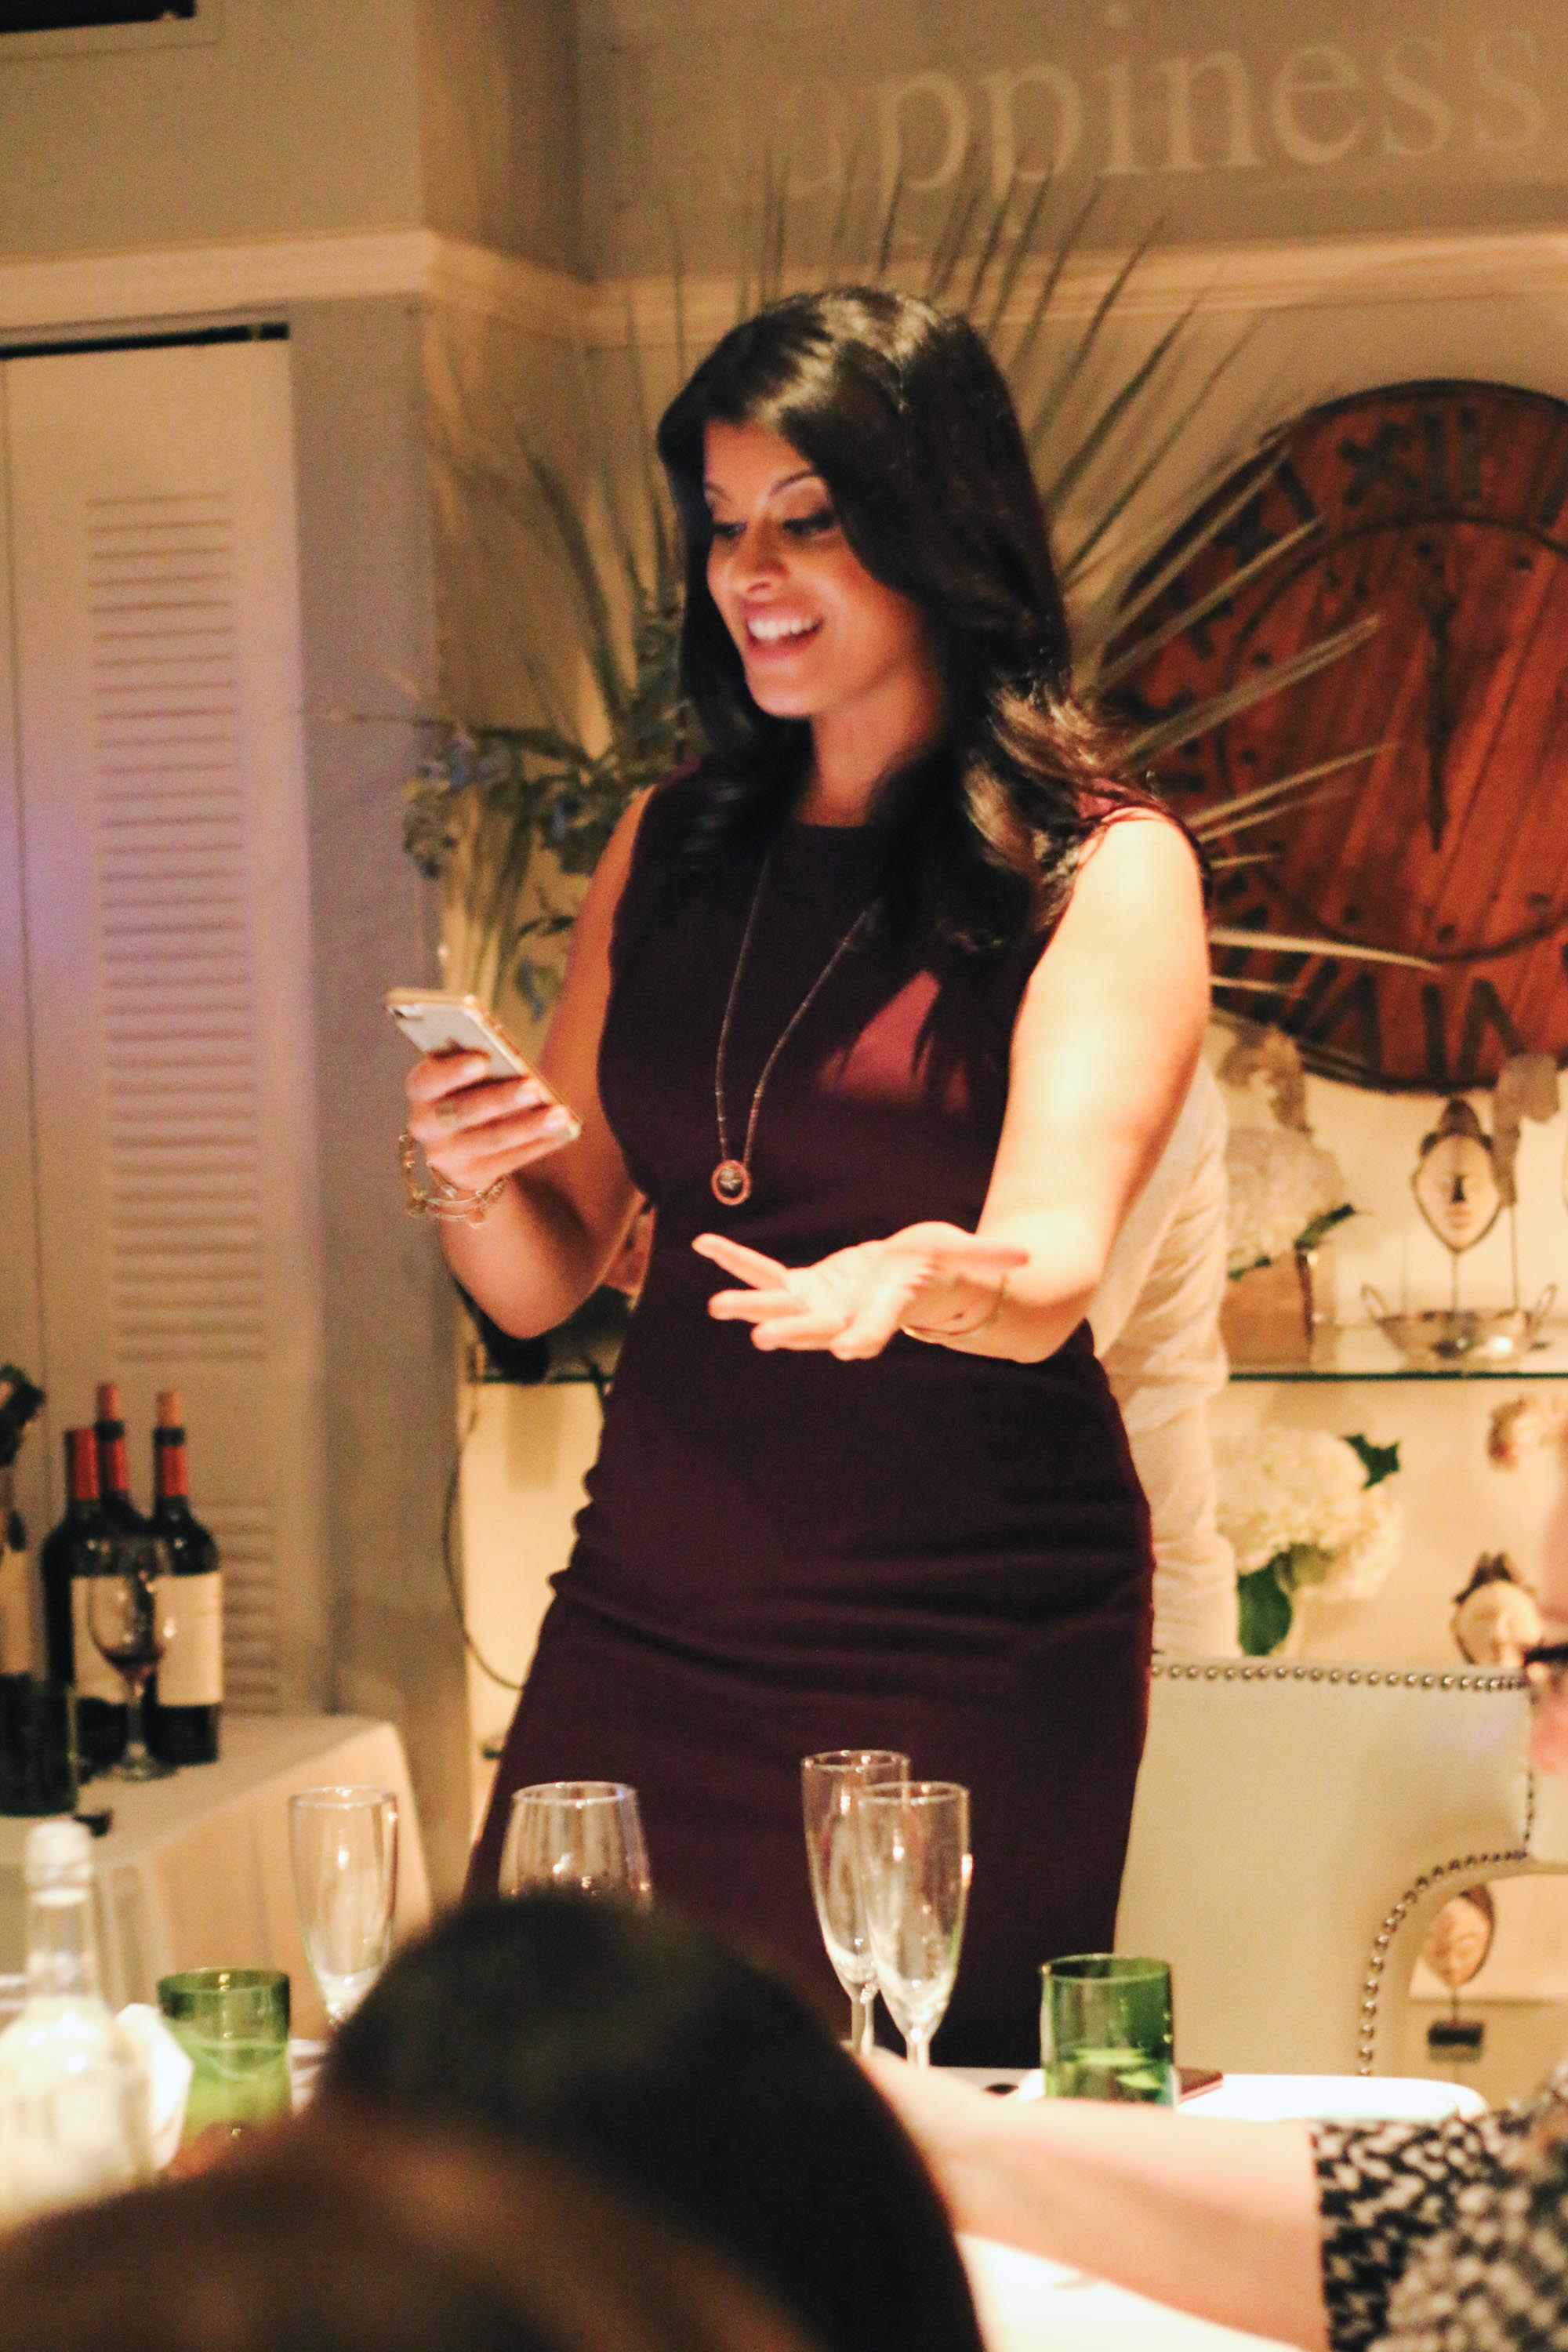 Women Who Wine Uncorked Conversations-Dolores Lolita-Miami Wine Events-Wine Tasting Miami-15.jpg